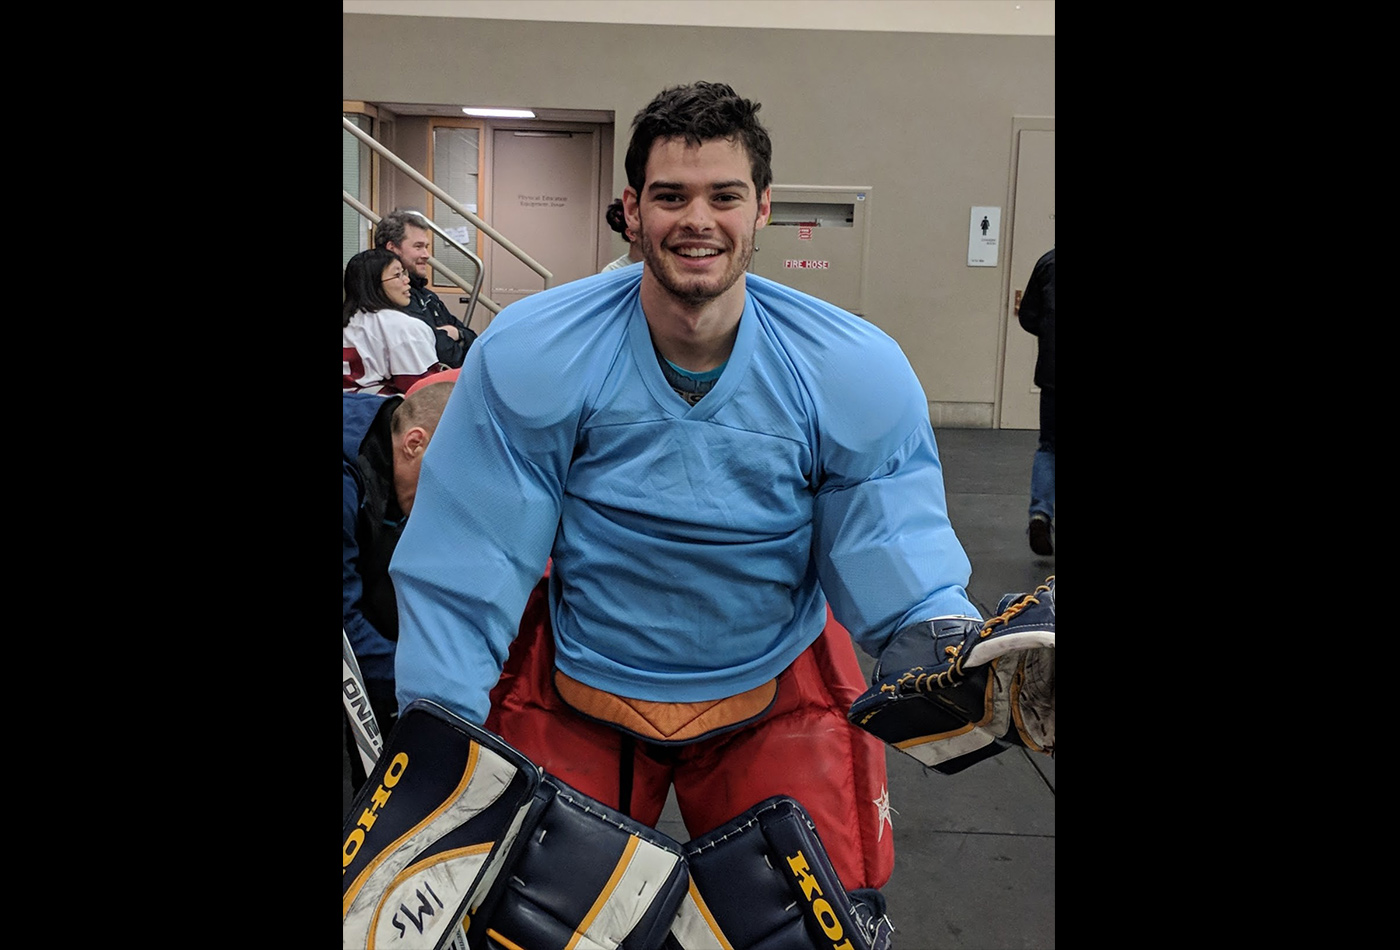 A male graduate student smiles in hockey gear.